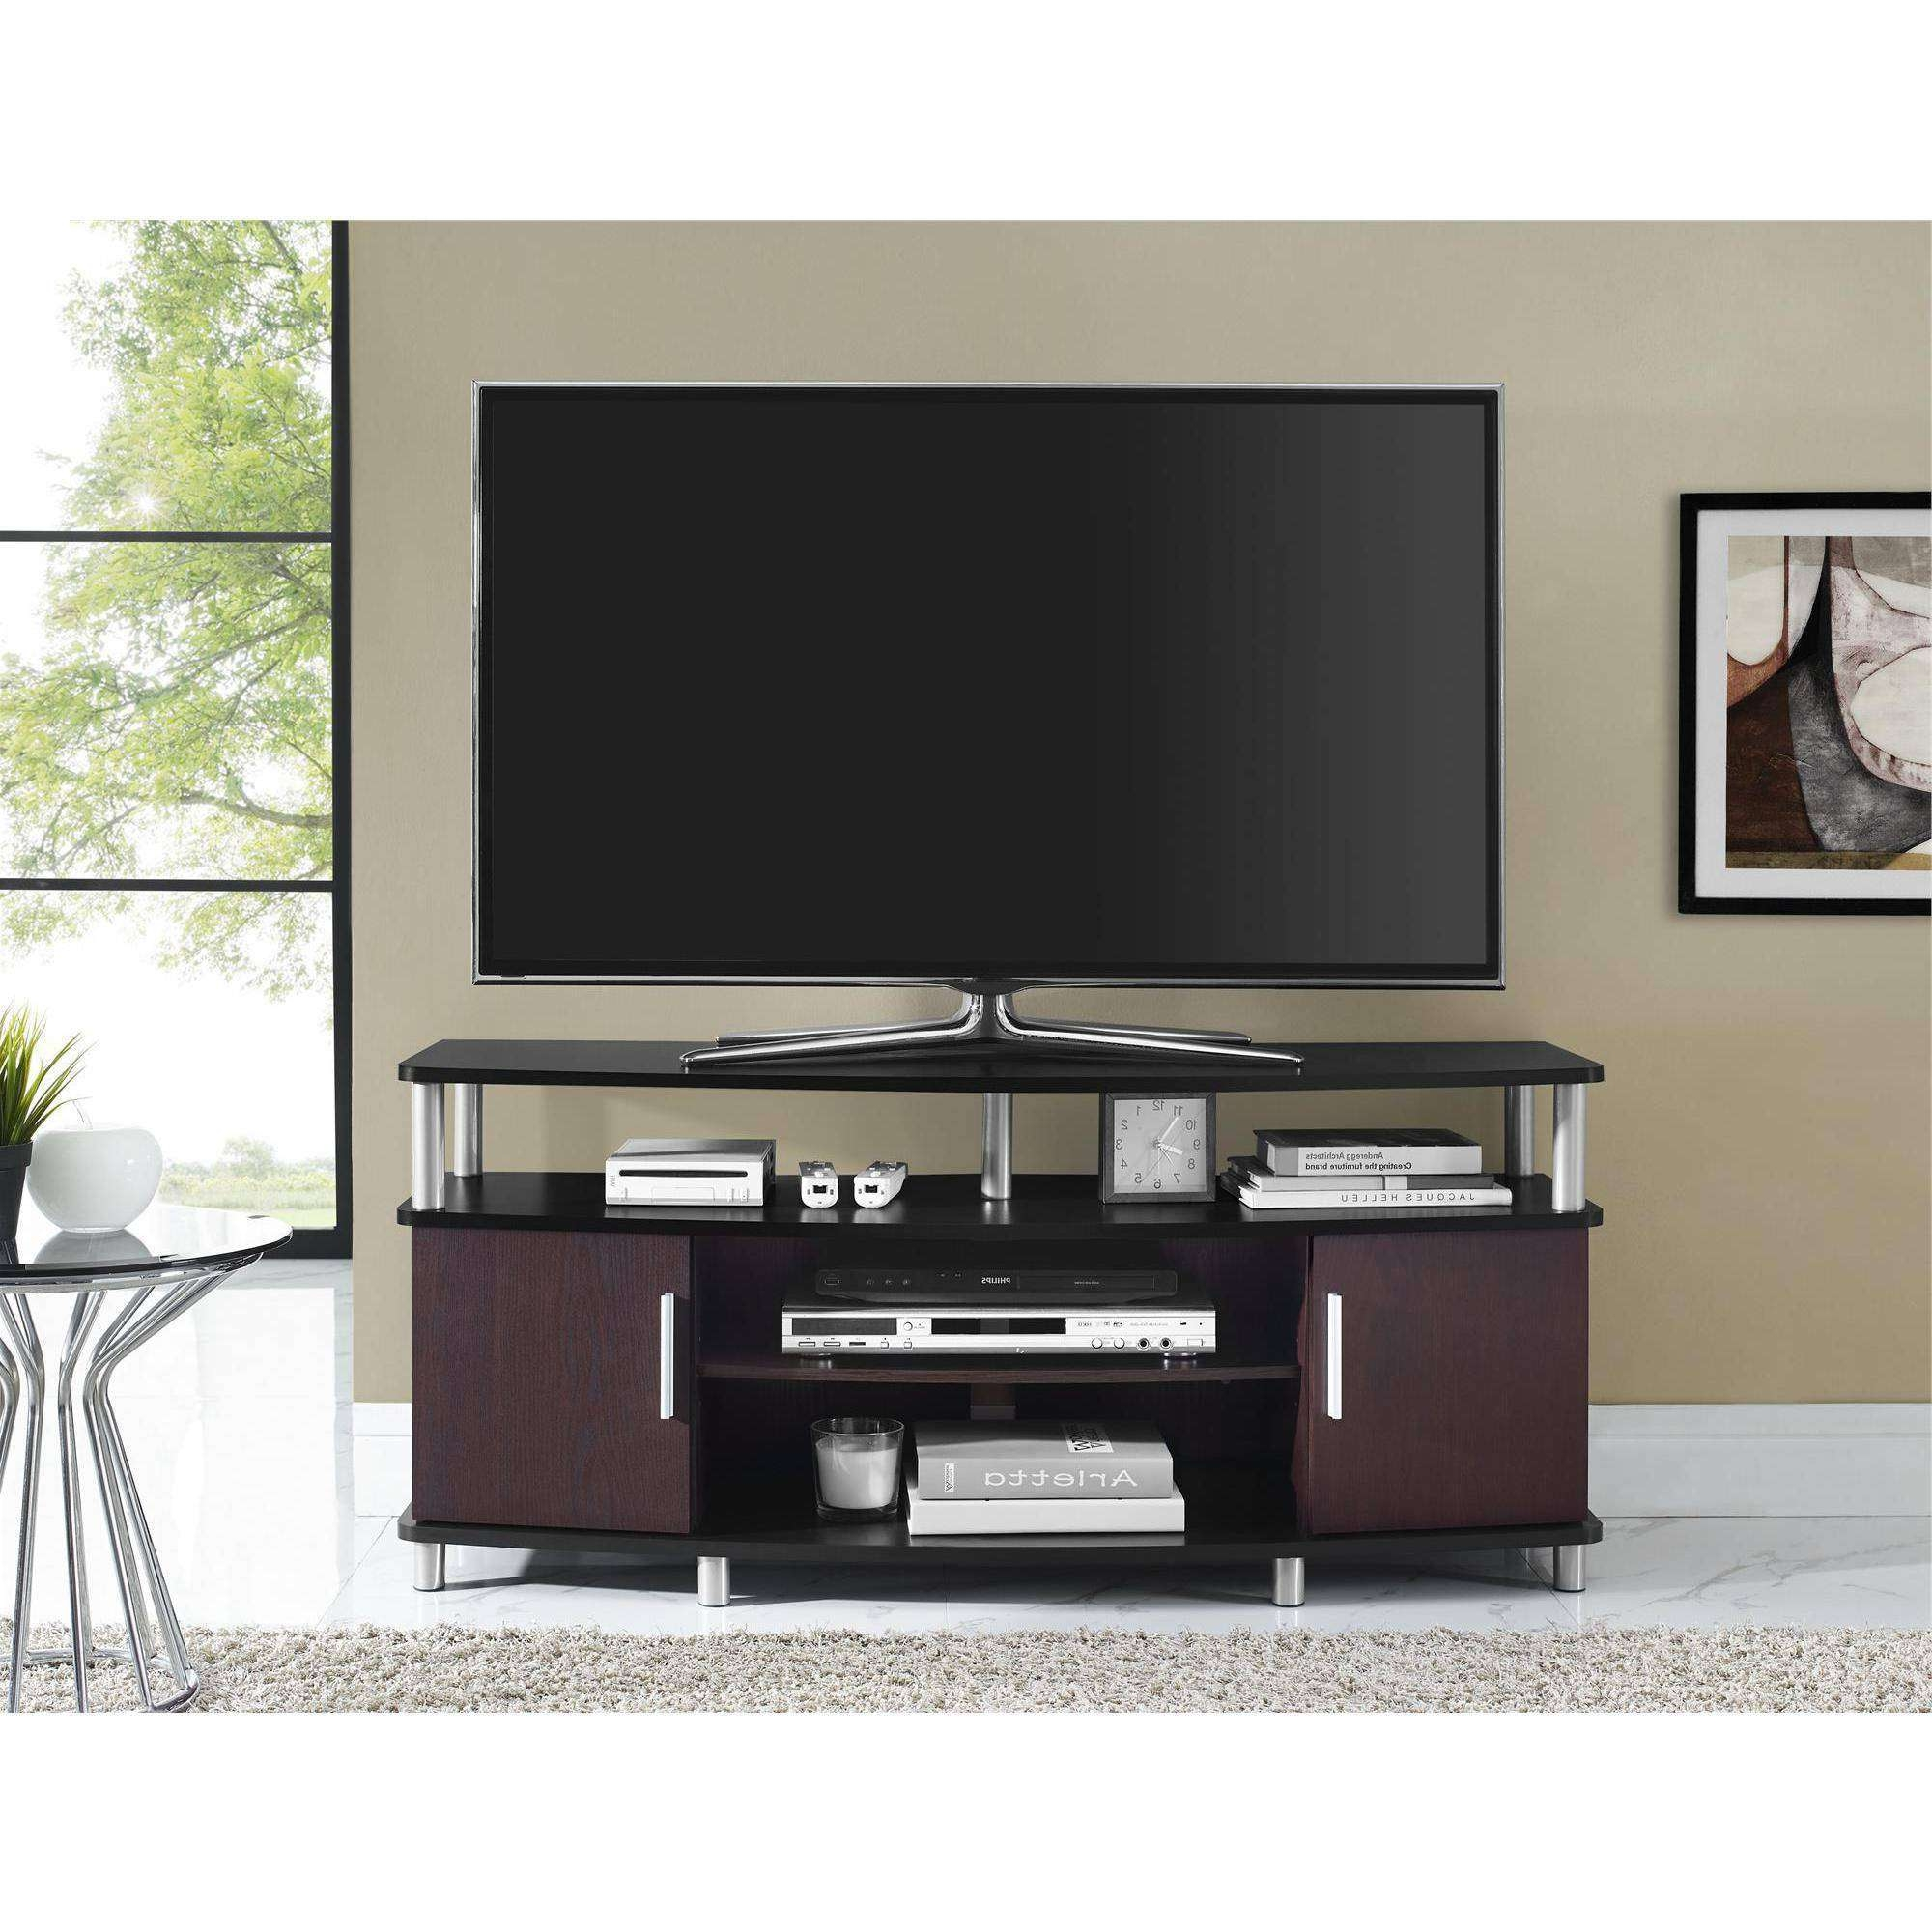 An Overview Of 50 Inch Tv Stand – Furniture Depot In Tv Stands For 50 Inch Tvs (View 9 of 15)